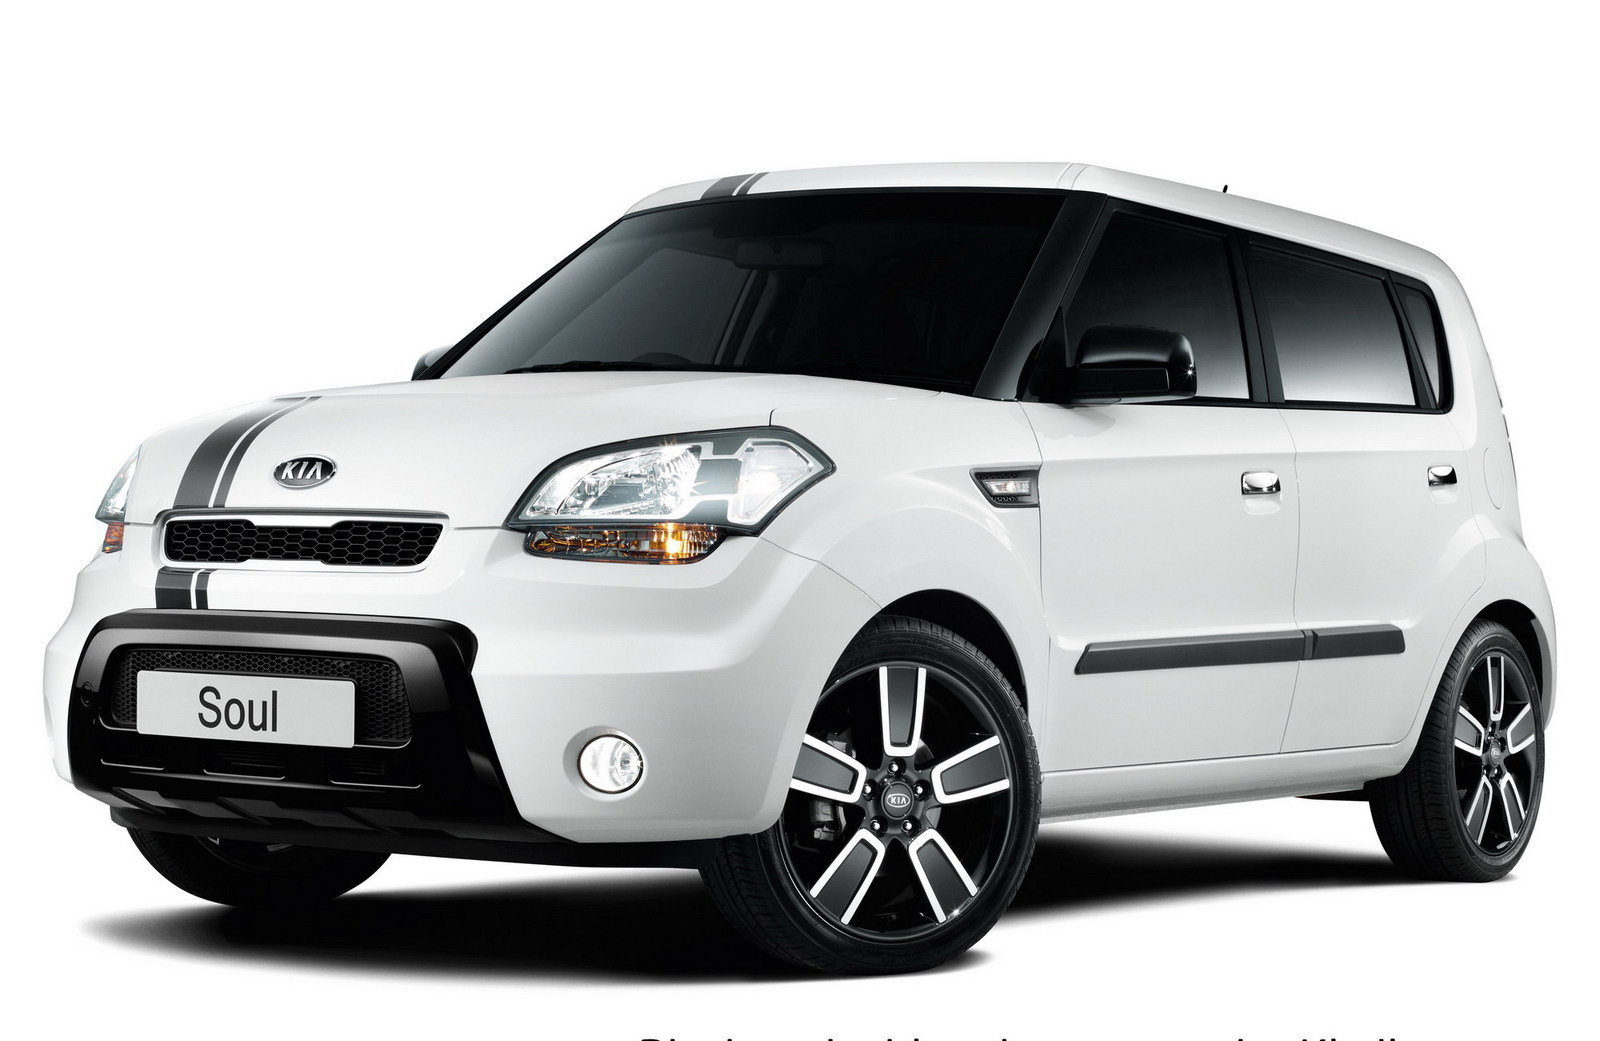 2010 kia soul echo review top speed. Black Bedroom Furniture Sets. Home Design Ideas